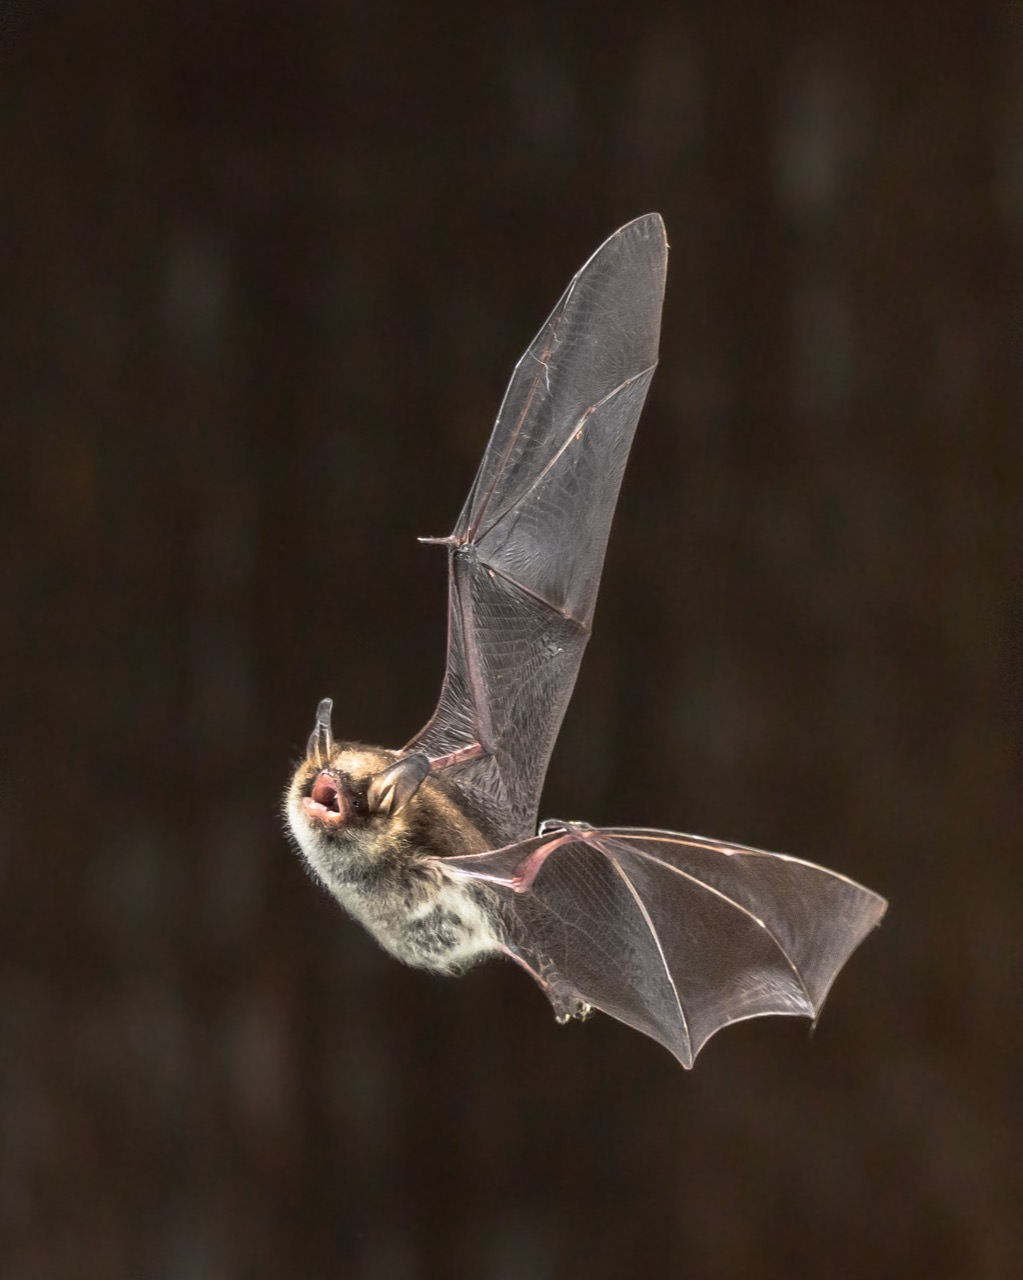 Vampire Bat Facts about Life